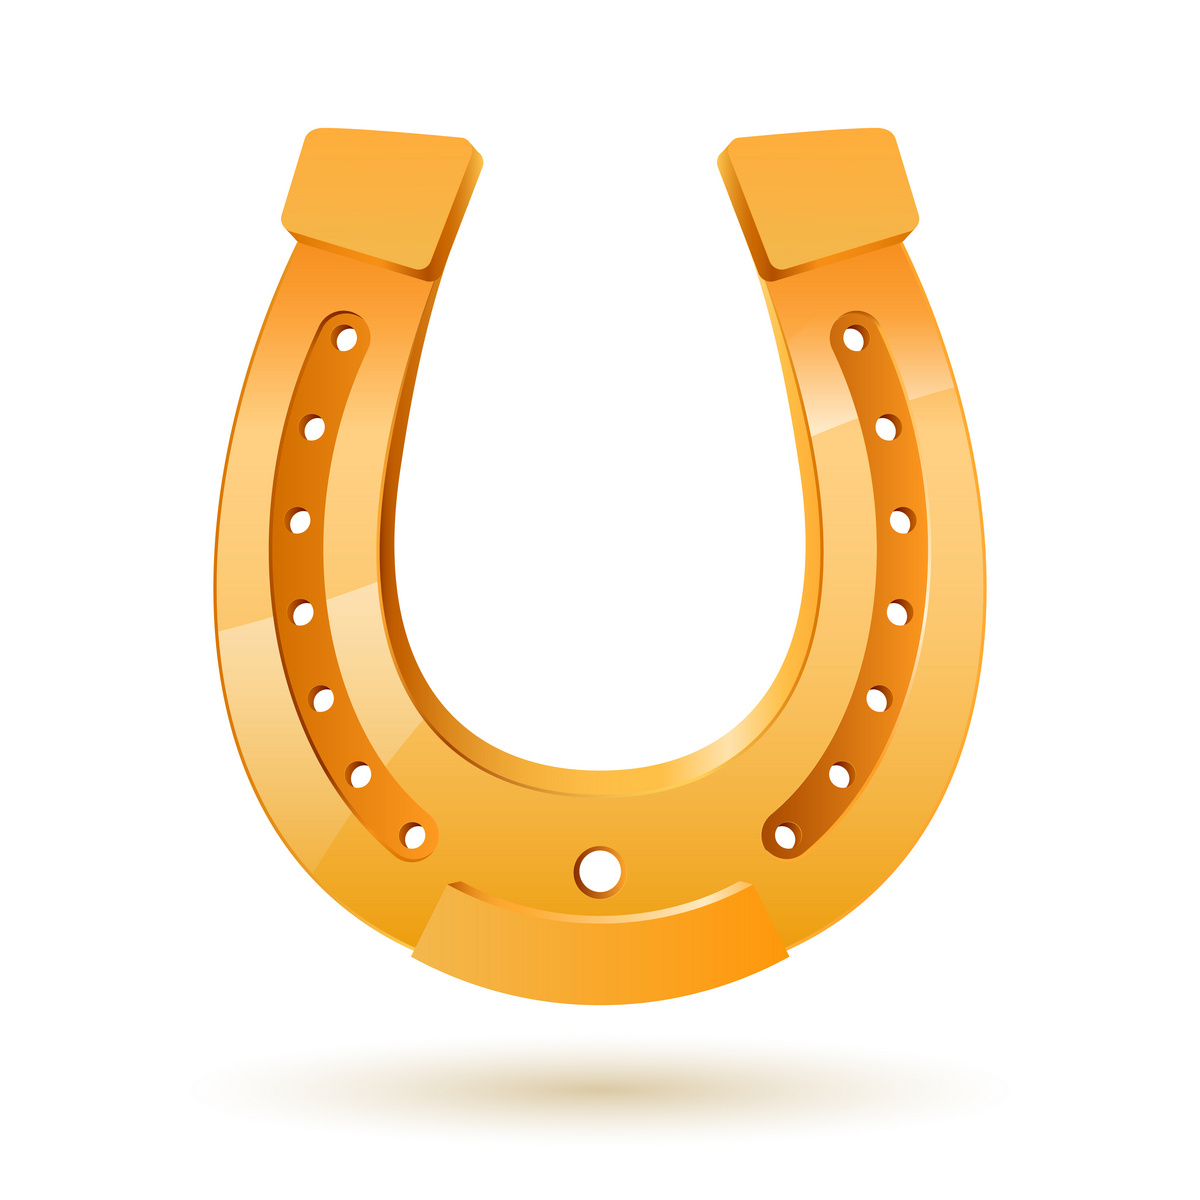 horseshoe template clipart best Horseshoe Clip Art Black and White Horse and Horseshoe Clip Art